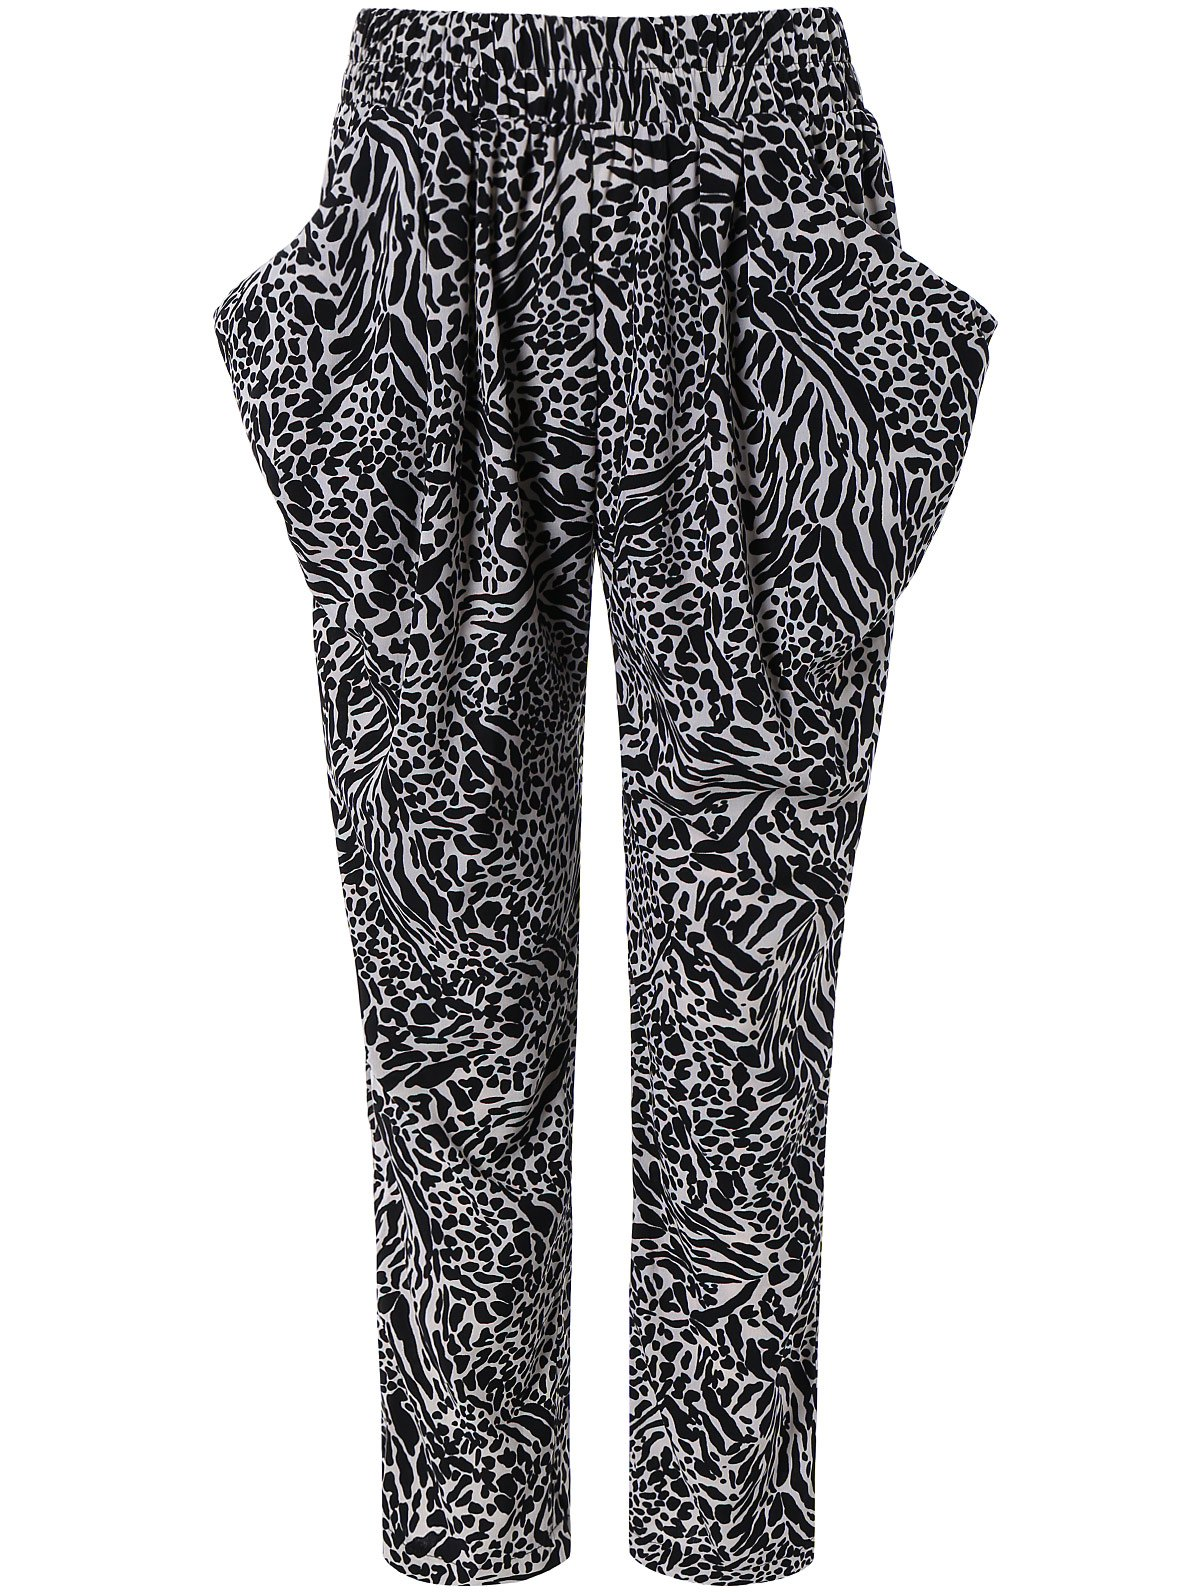 Pocket Design Leopard Print Harem Pants - BLACK M